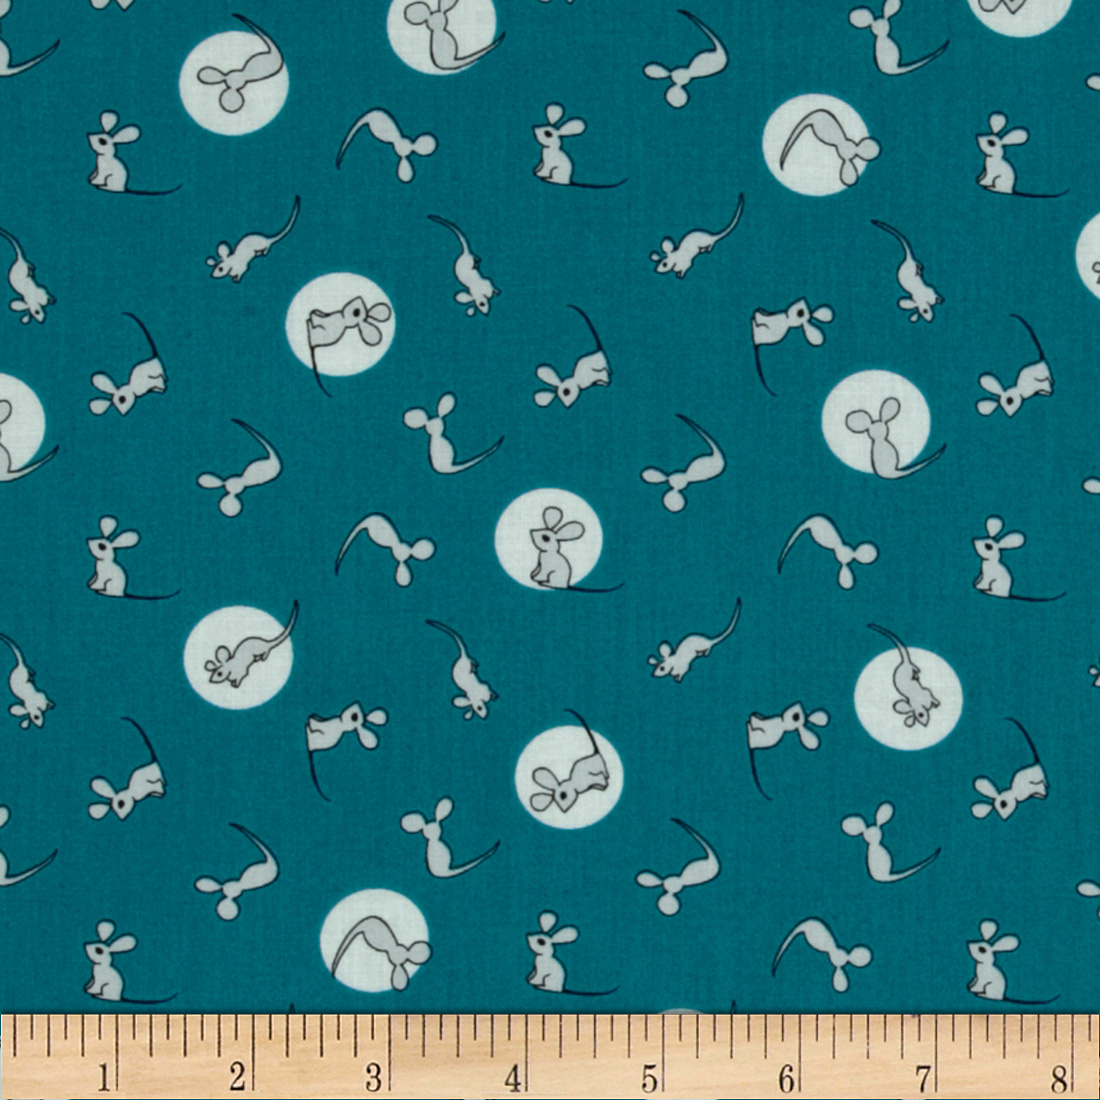 Goodnight Moon Organic Mouse Blue Fabric